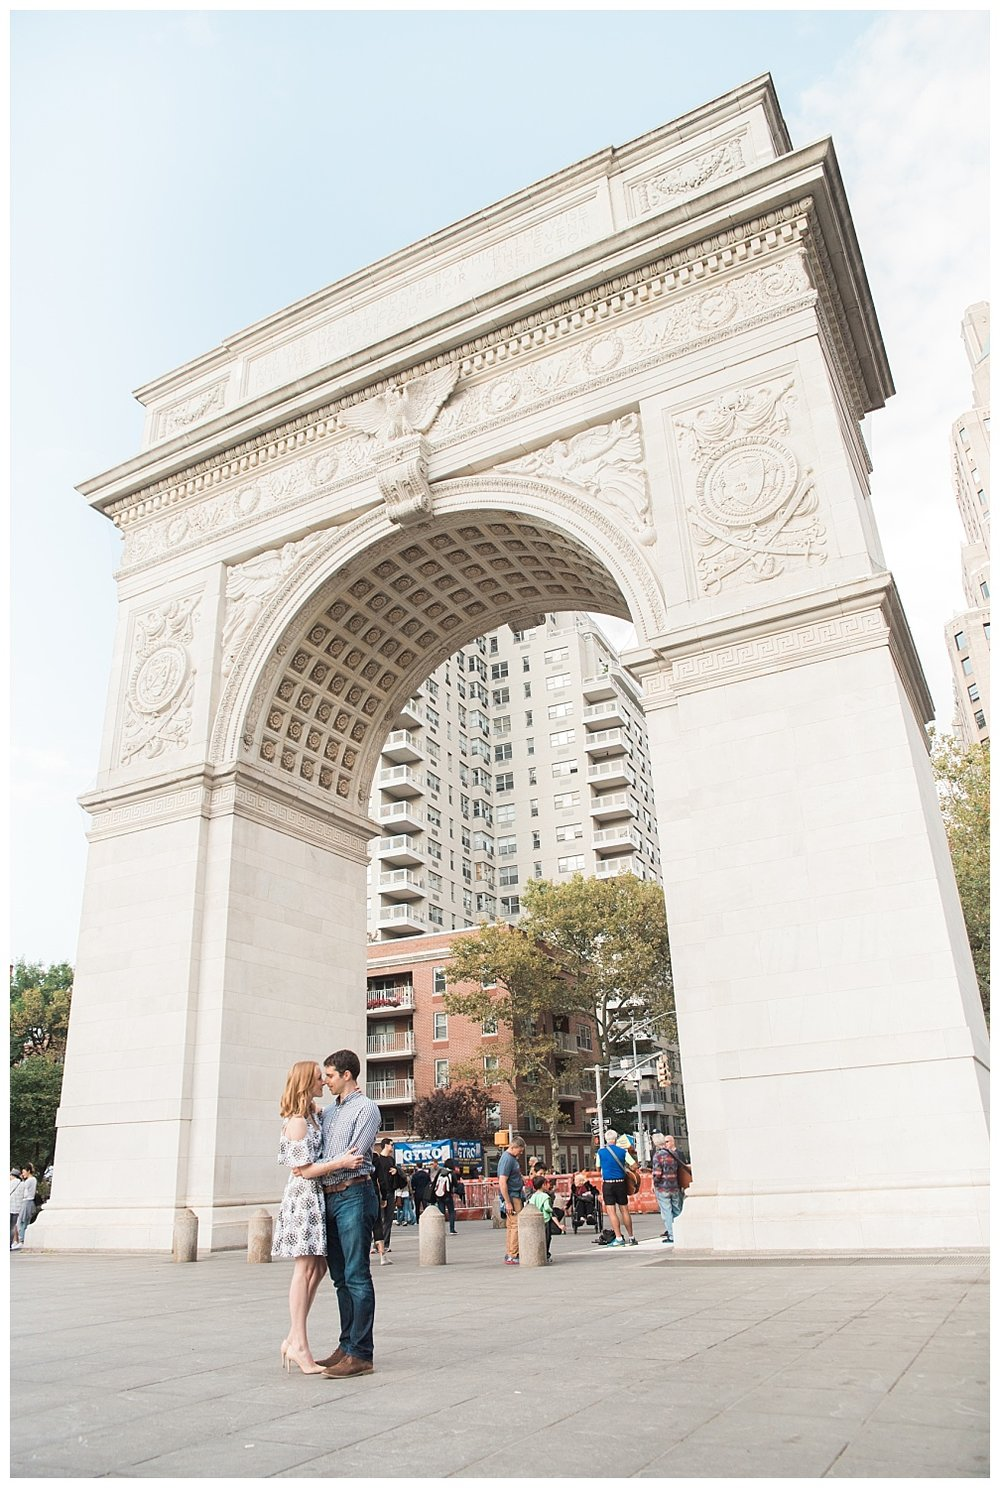 NYC-Dumbo-Brooklyn-Washington-Square-Park-Engagement-Photo-006.JPG